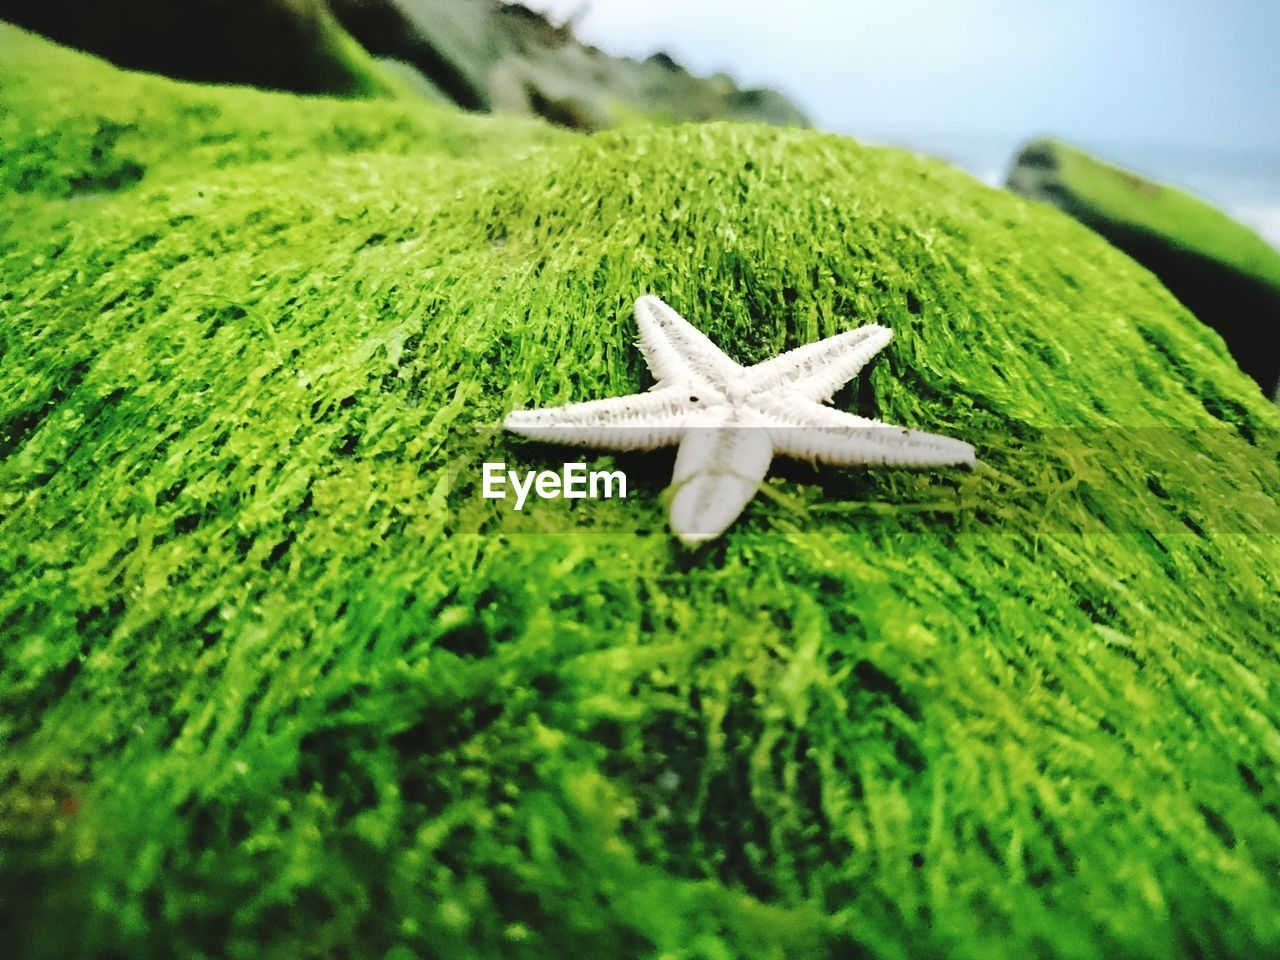 starfish, star shape, one animal, sea life, close-up, green color, nature, day, animal themes, outdoors, no people, animals in the wild, beauty in nature, beach